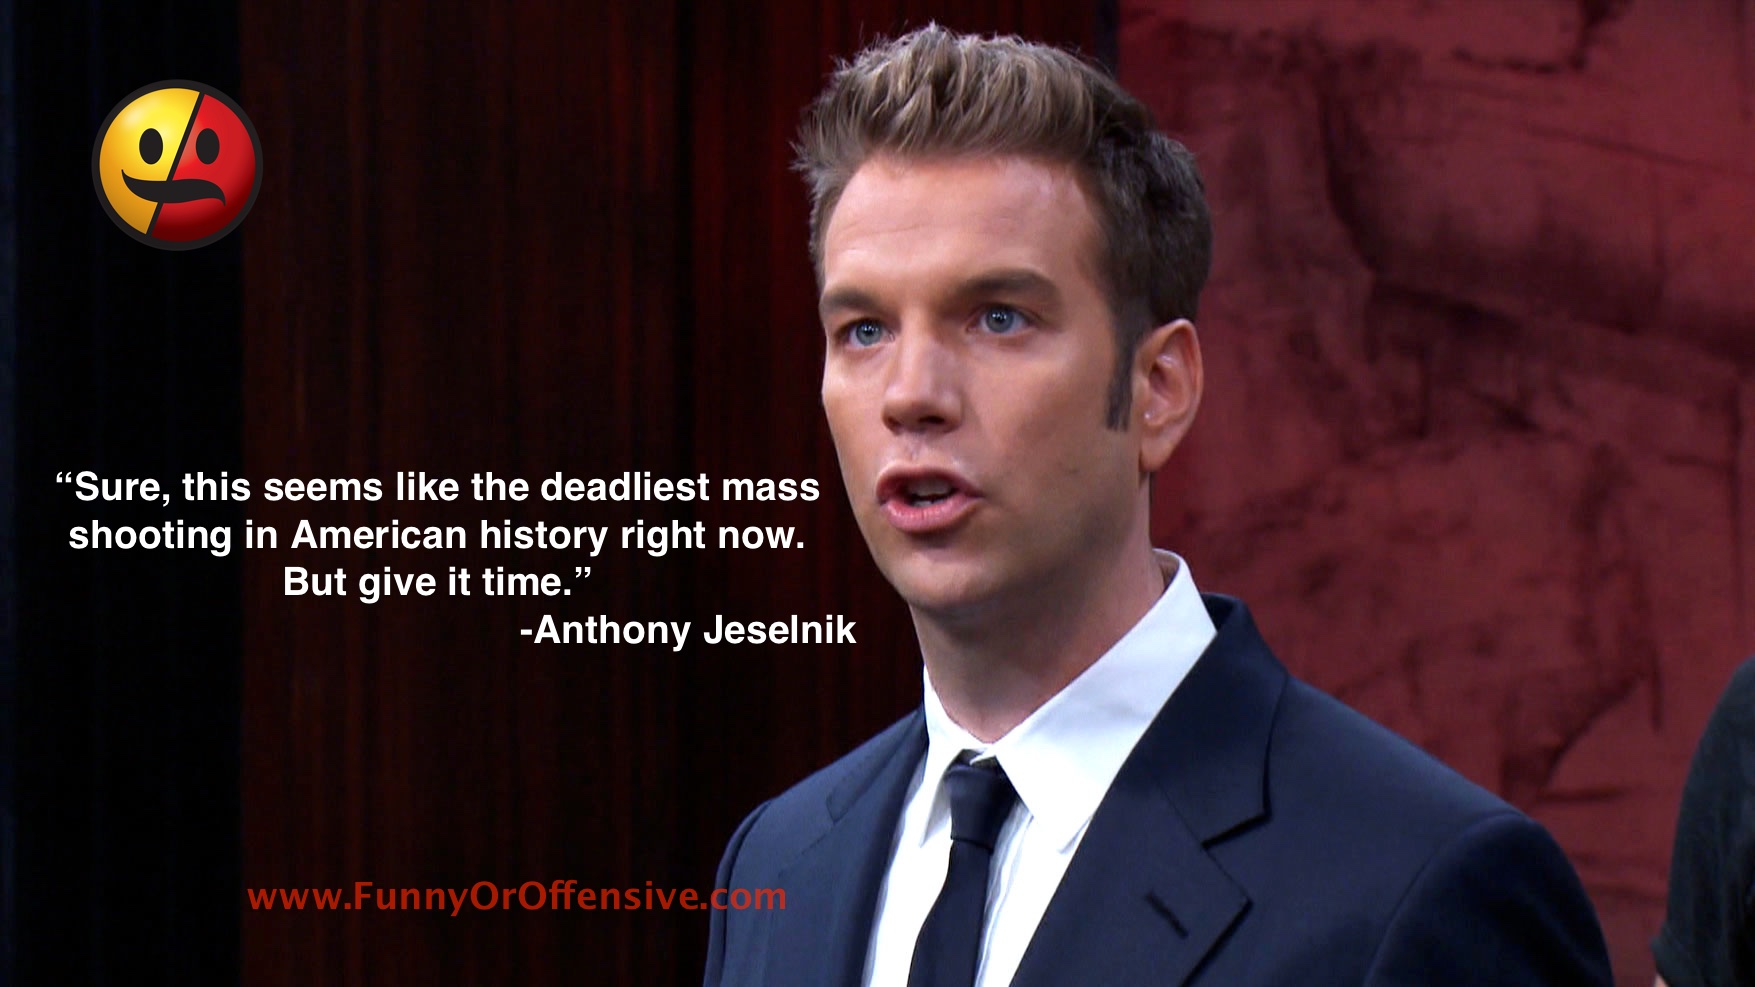 Anthony Jeselnik on Orlando Shooting